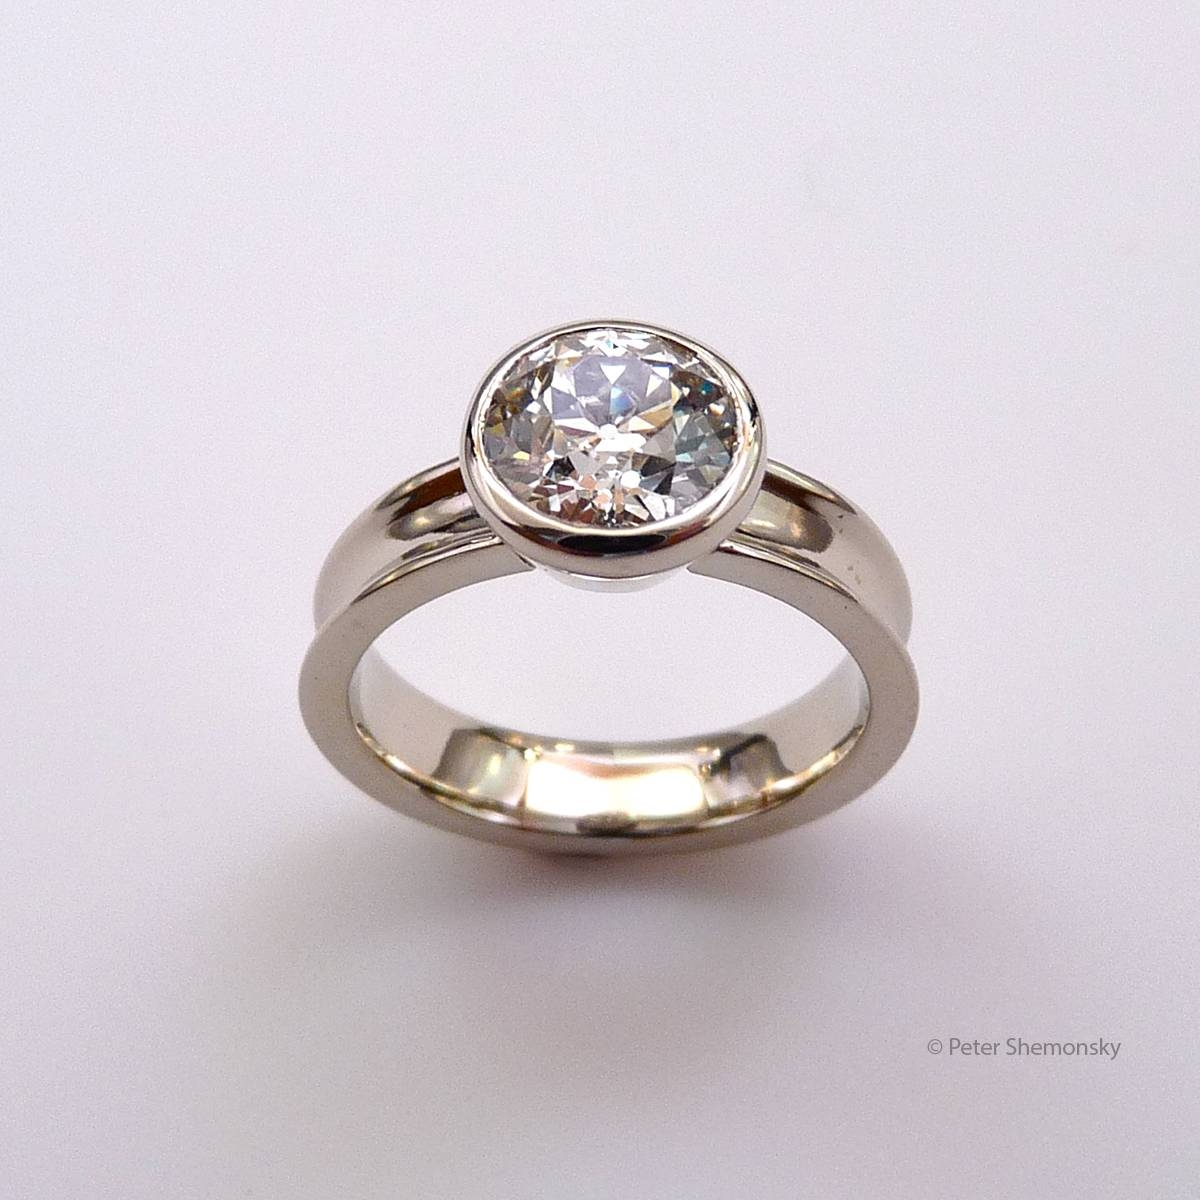 15 Ideas of Flat Engagement Ring Settings